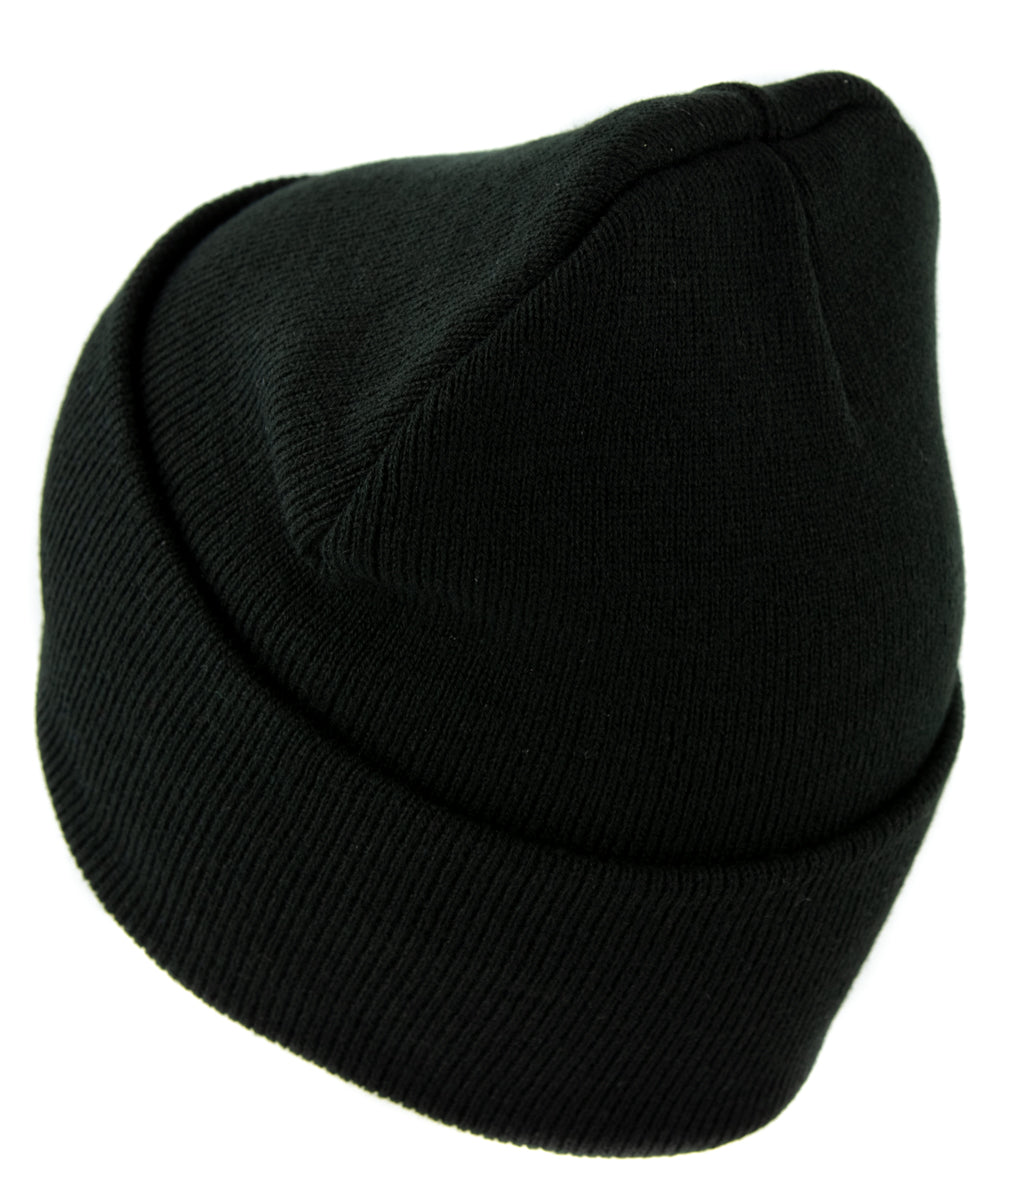 Black Metal Style Inverted Cross Cuff Beanie Knit Cap Unholy Evil Alternative Clothing